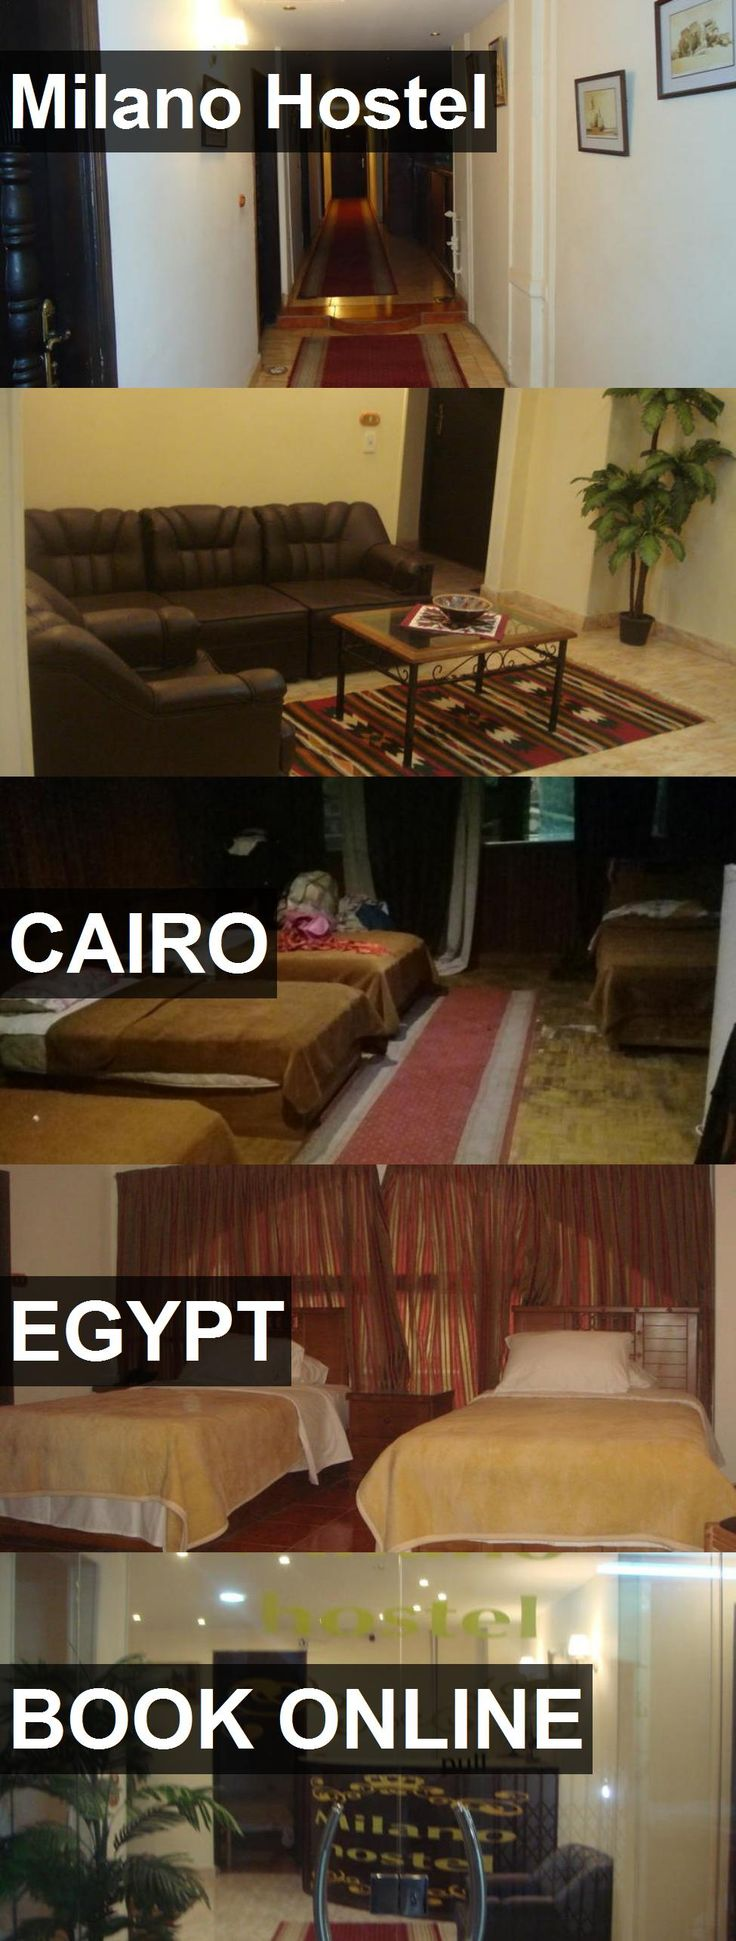 Milano Hostel in Cairo, Egypt. For more information, photos, reviews and best prices please follow the link. #Egypt #Cairo #travel #vacation #hostel